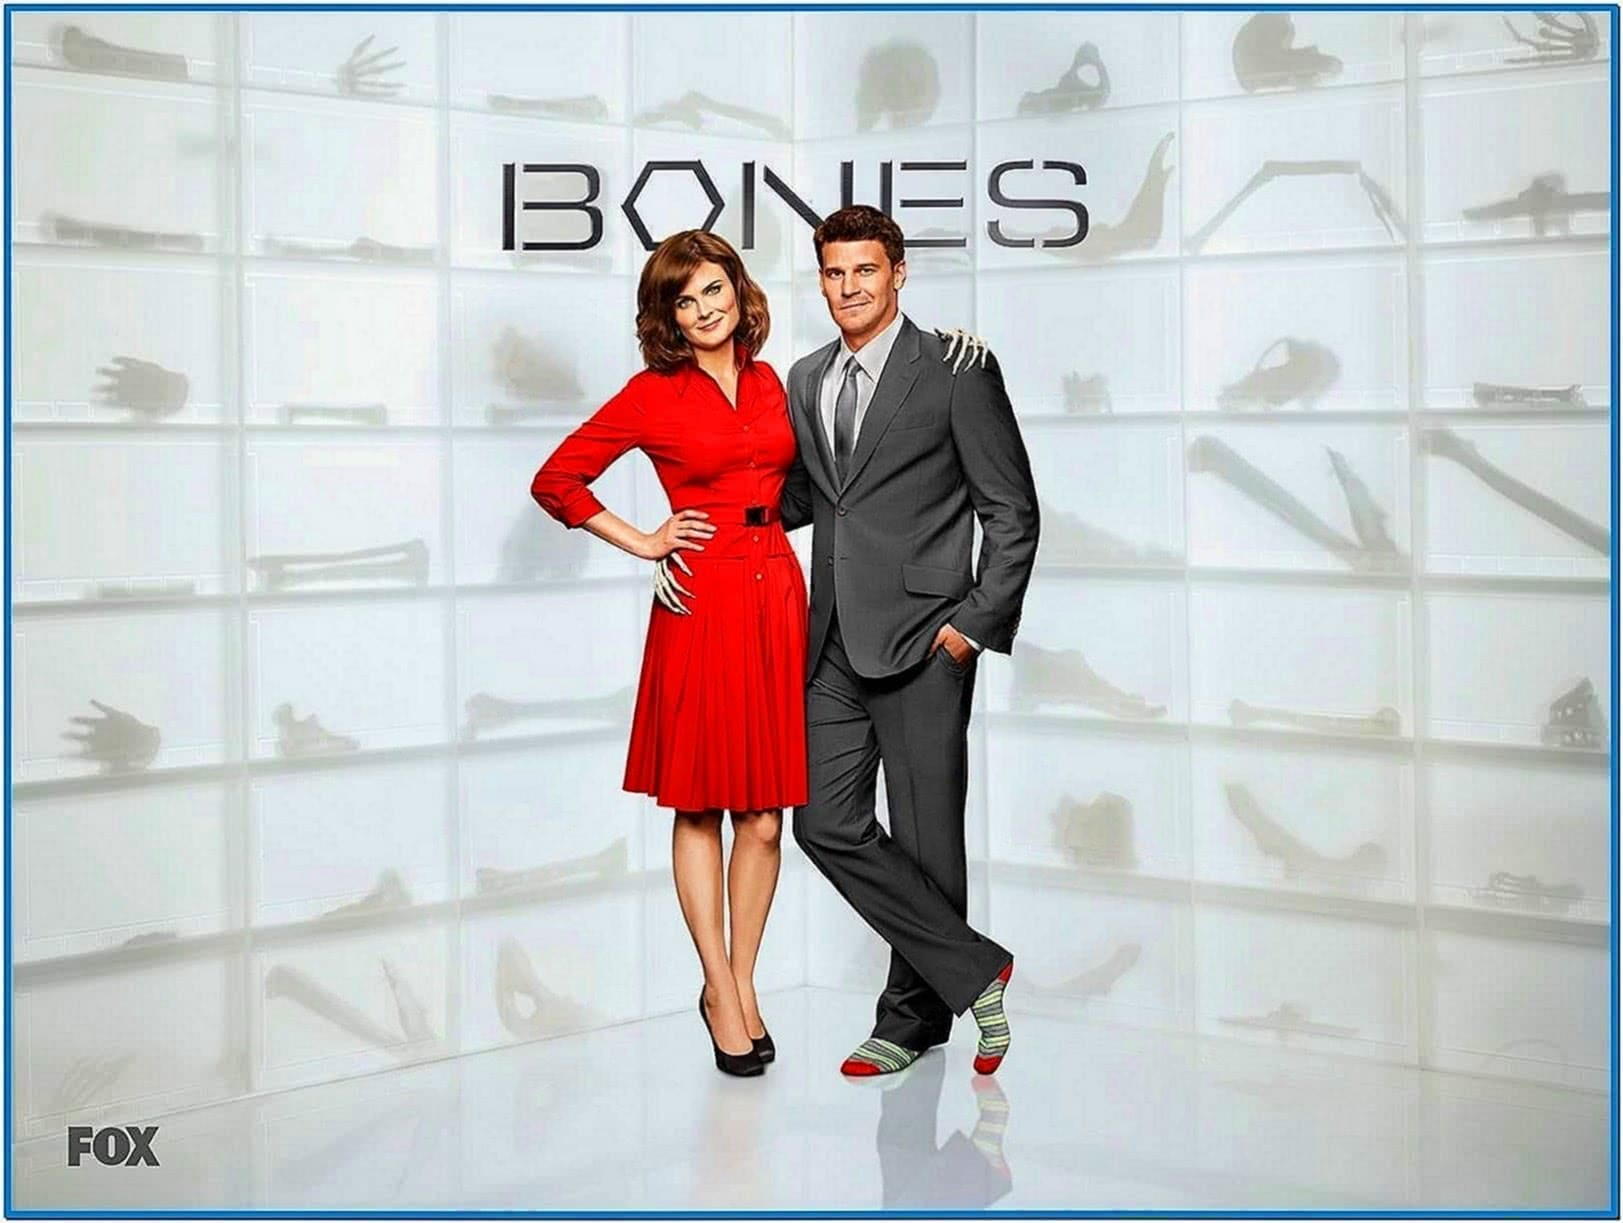 Divergence tv Show Bones tv Show Screensaver